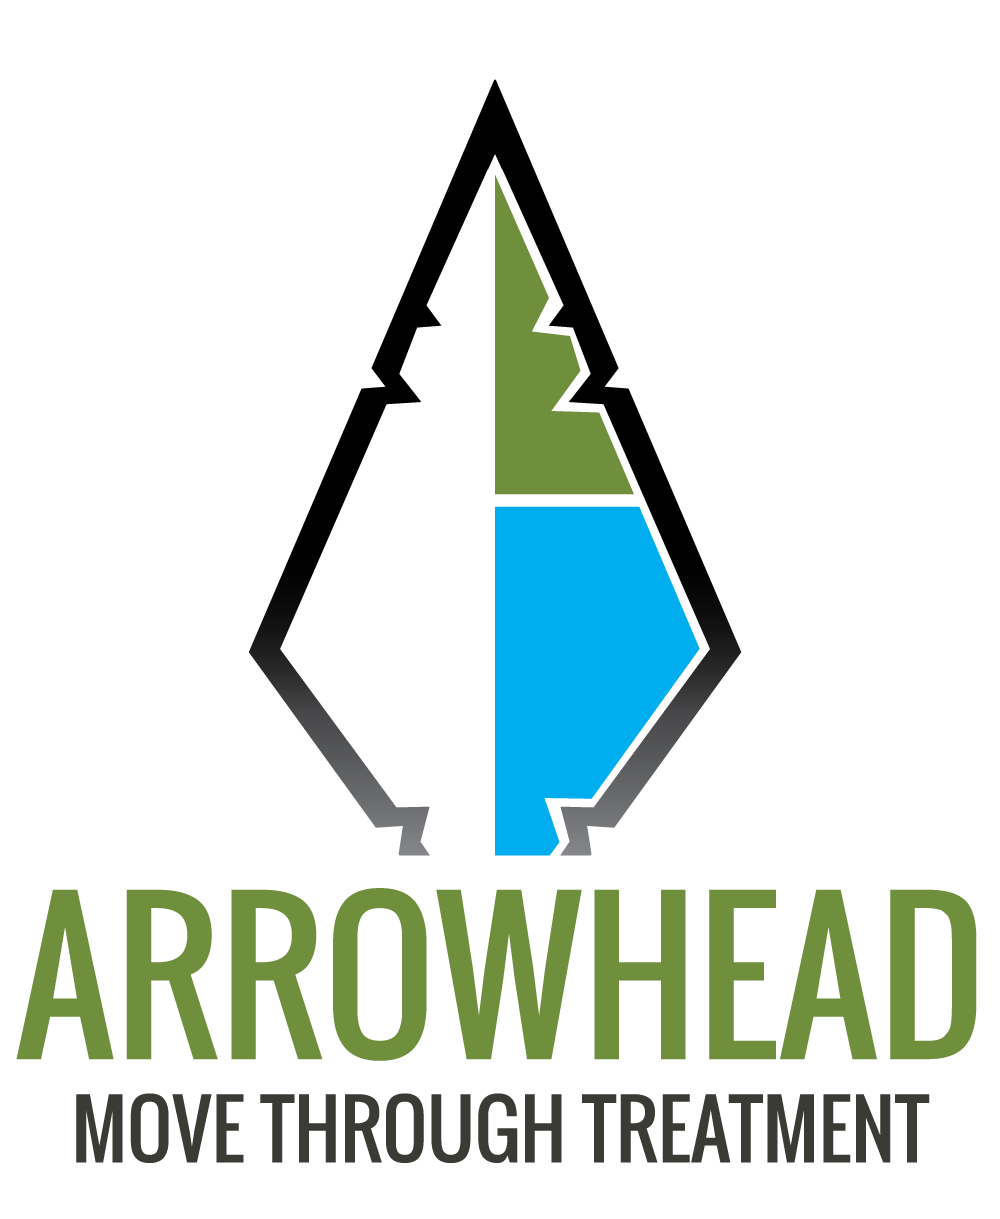 Arrowhead - Move Through Treatment